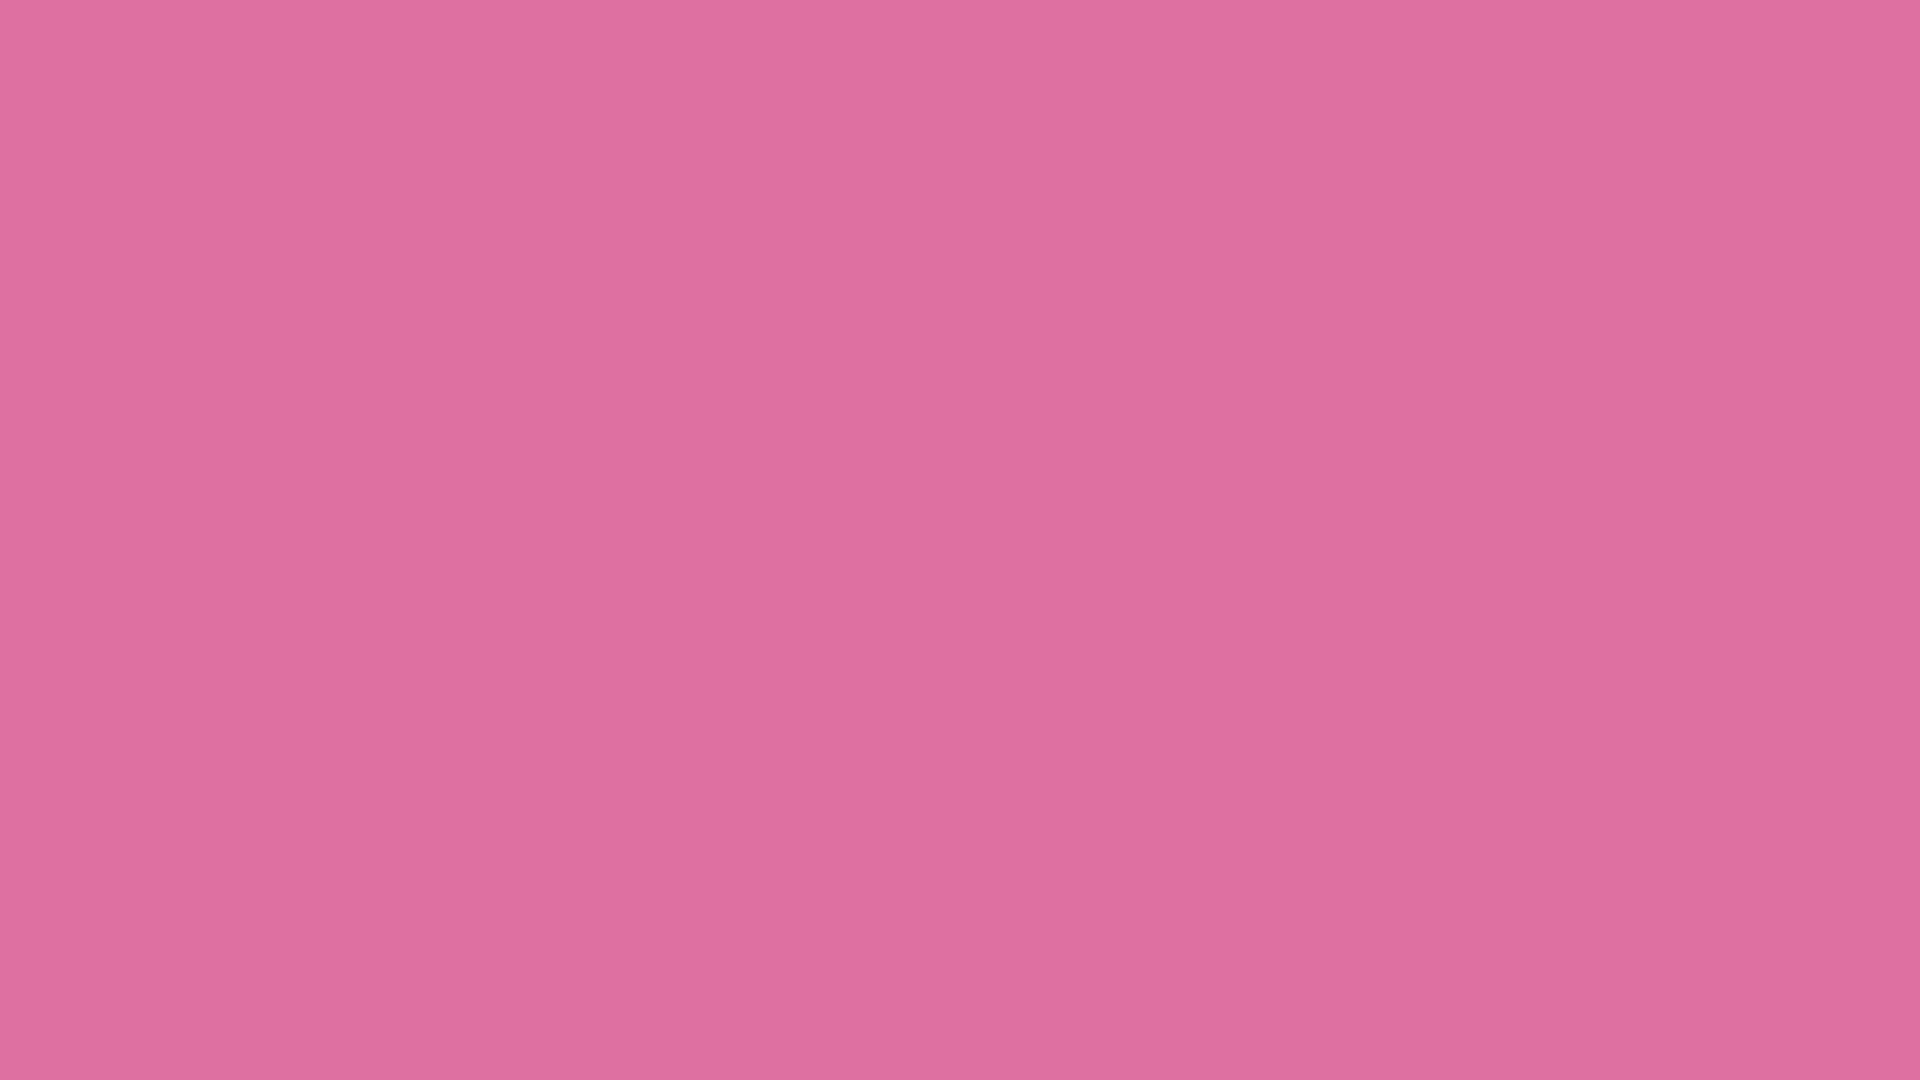 1920x1080 Thulian Pink Solid Color Background